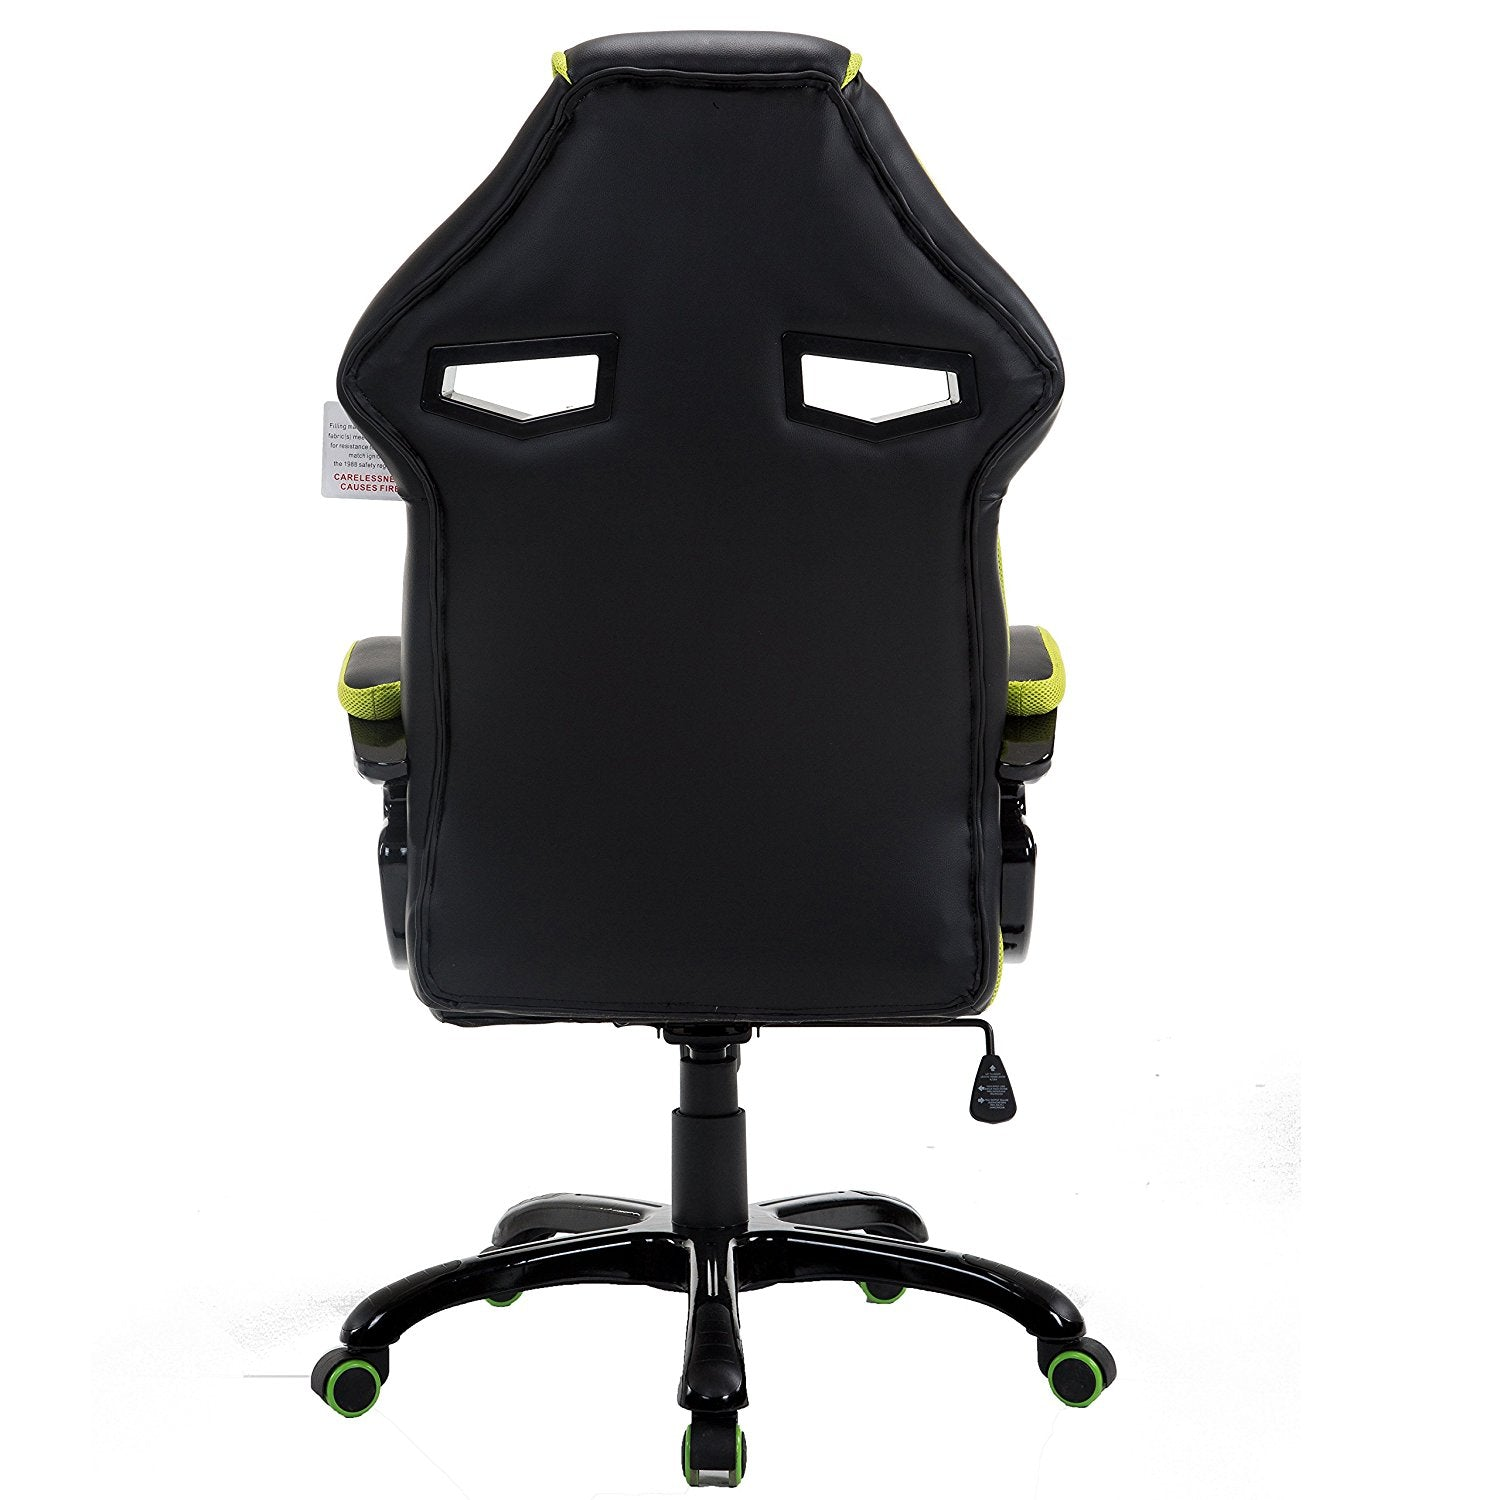 Phenomenal Ctf Racing Style Gaming Pu Leather Swivel Desk Chair With Fabric Trim Green Onthecornerstone Fun Painted Chair Ideas Images Onthecornerstoneorg